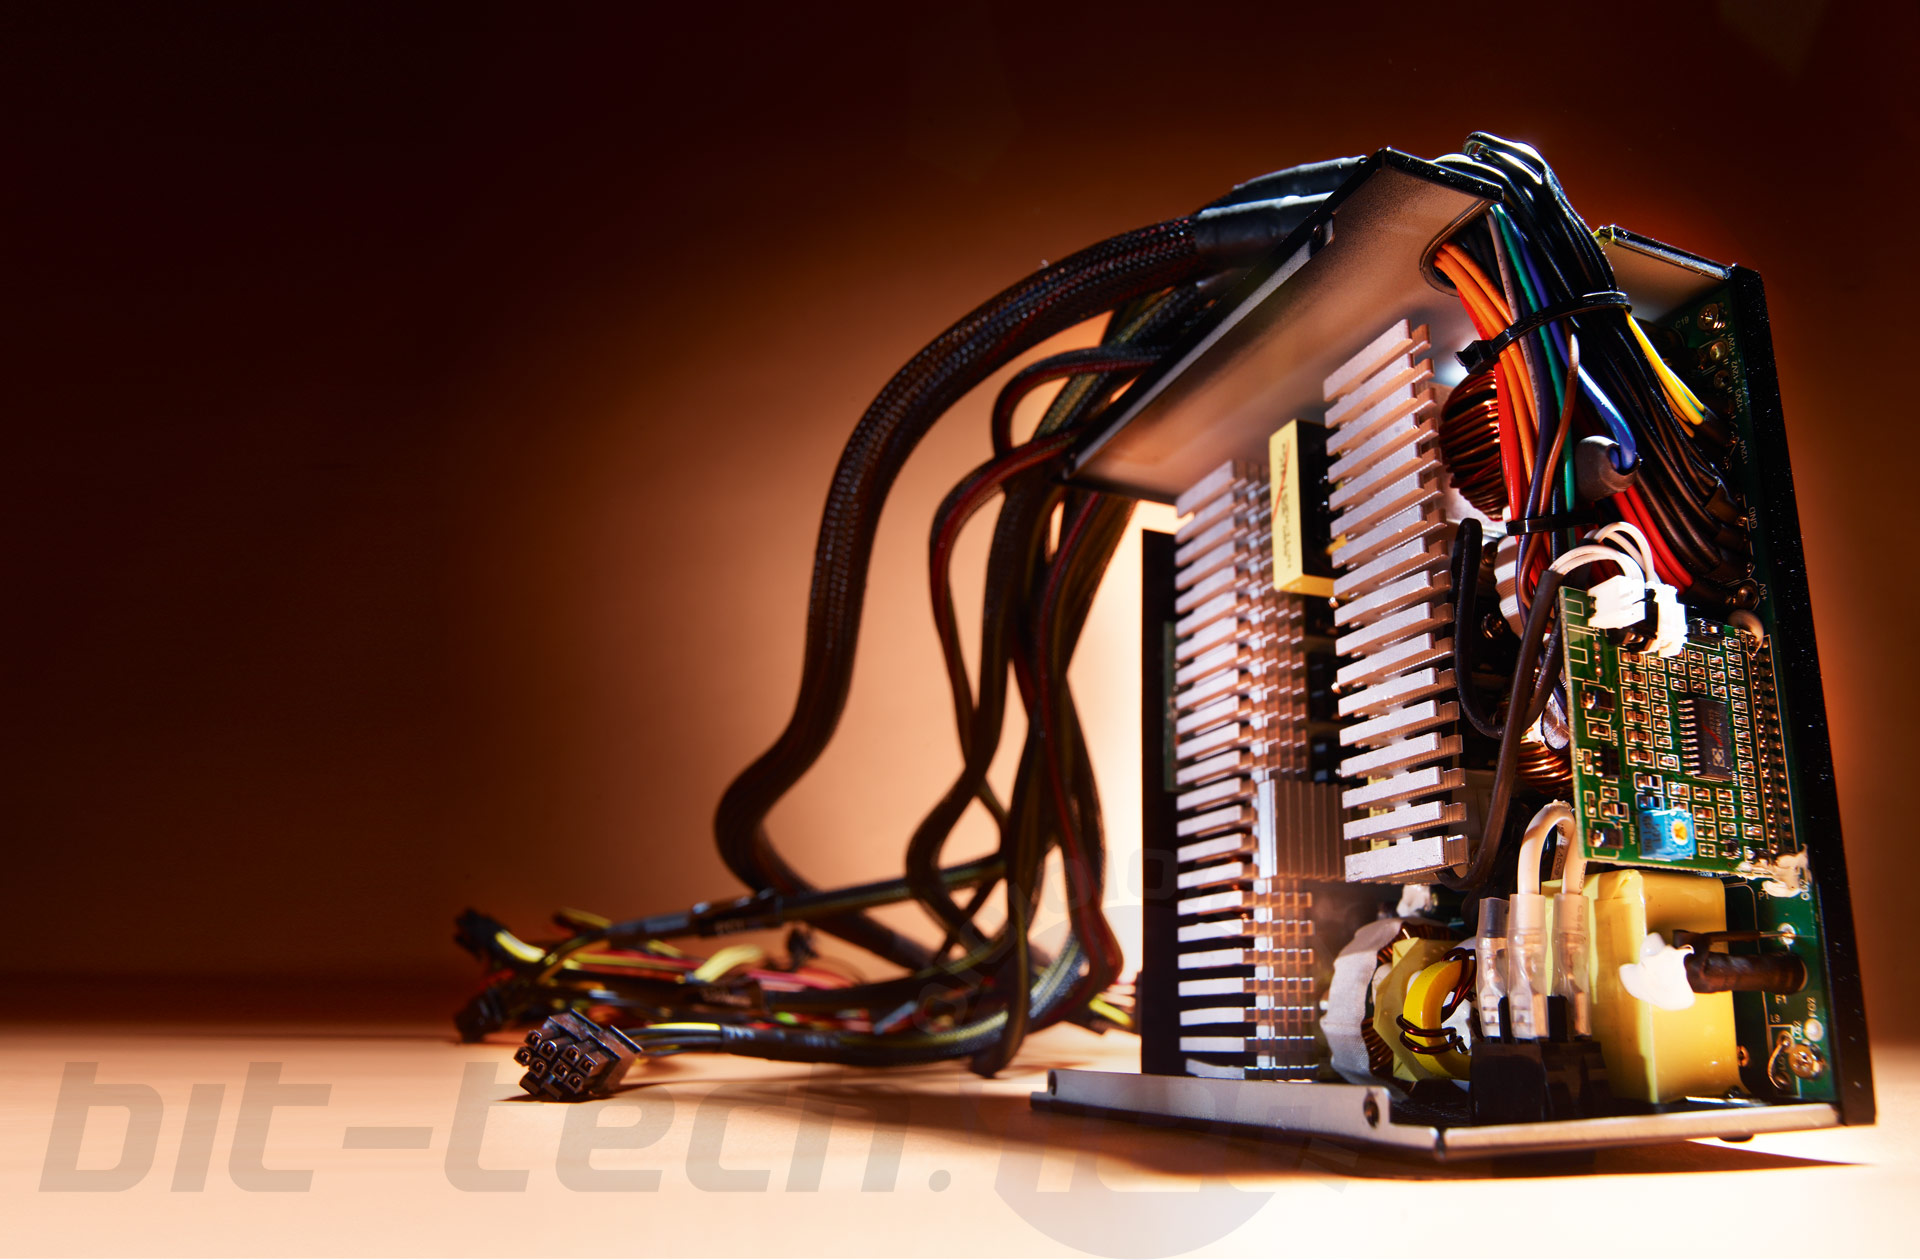 bit-tech-psu-labs-1920.jpg